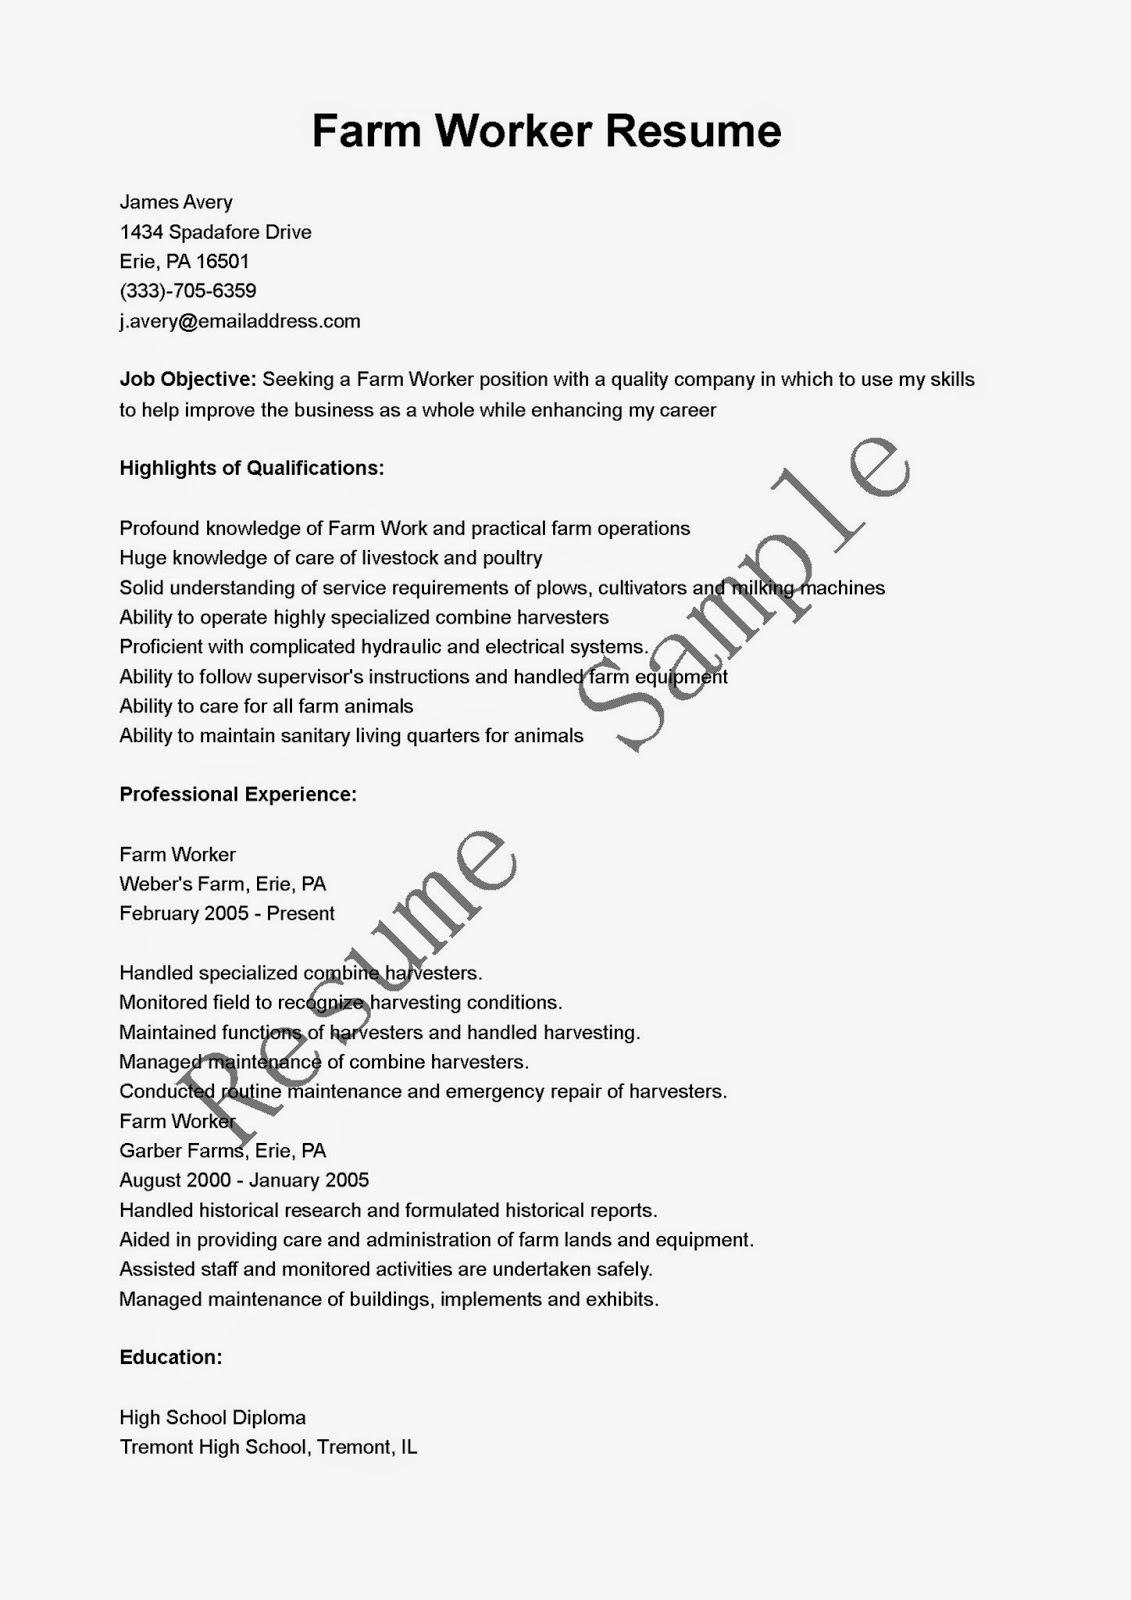 Resume samples farm worker resume sample for Cover letter for working with animals